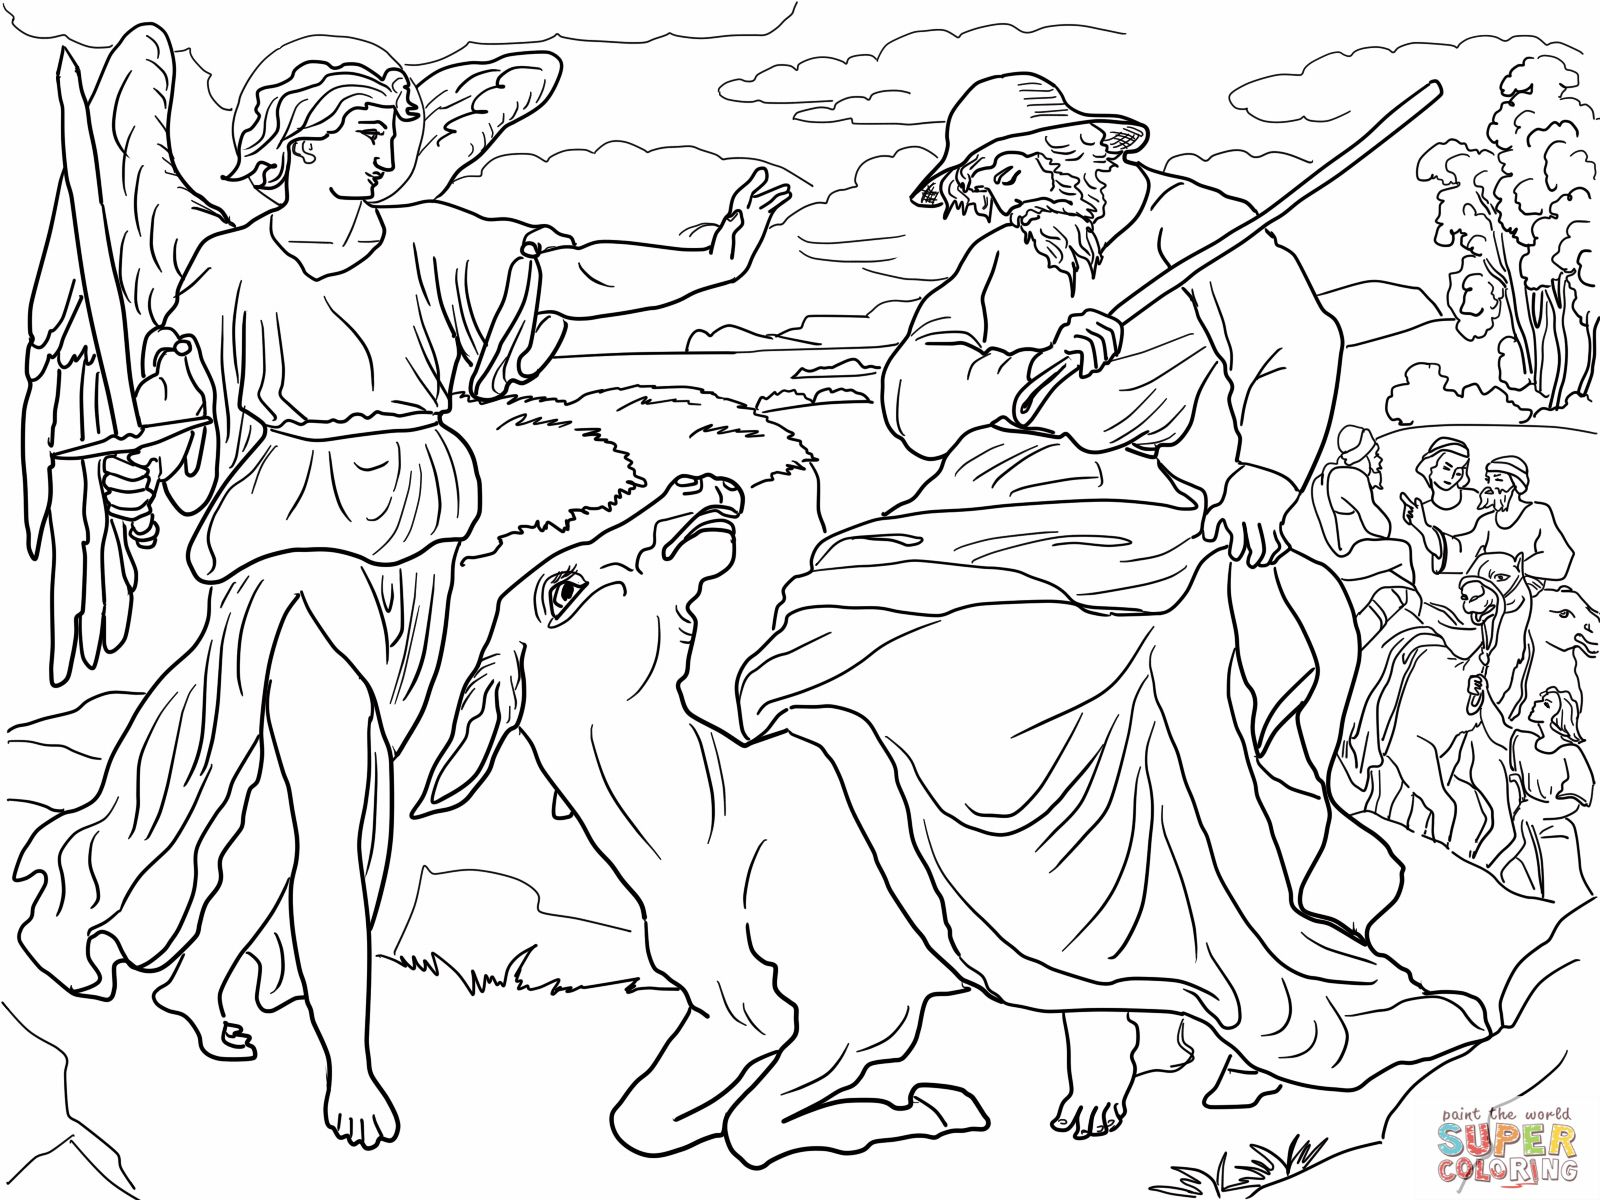 Balaam and the donkey. Bible coloring pages | Bible coloring pages ...